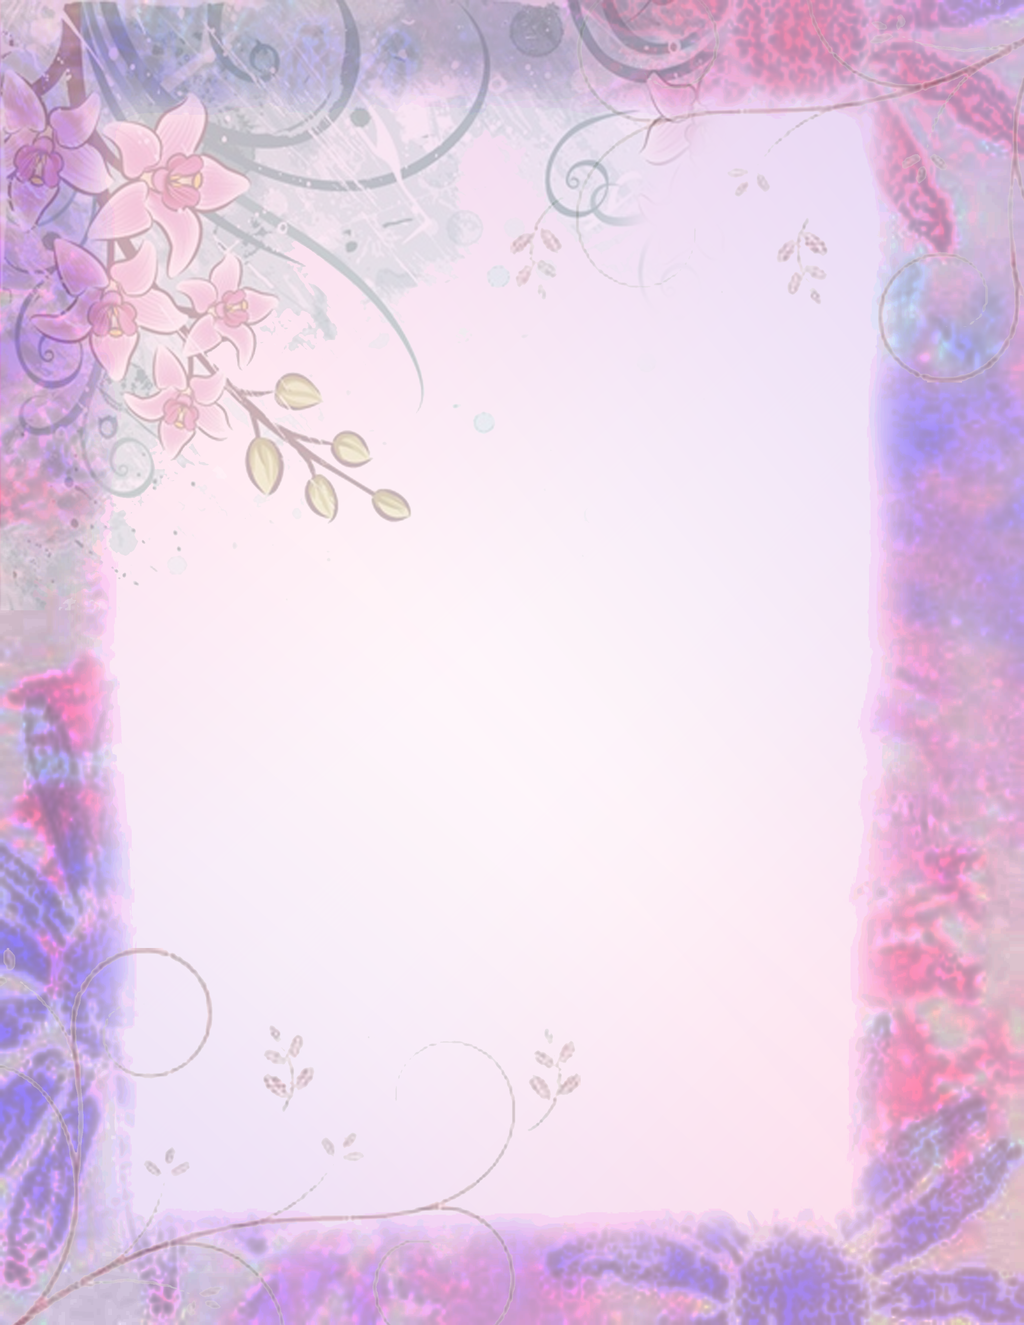 Flower border by XxHayBugxX on DeviantArt